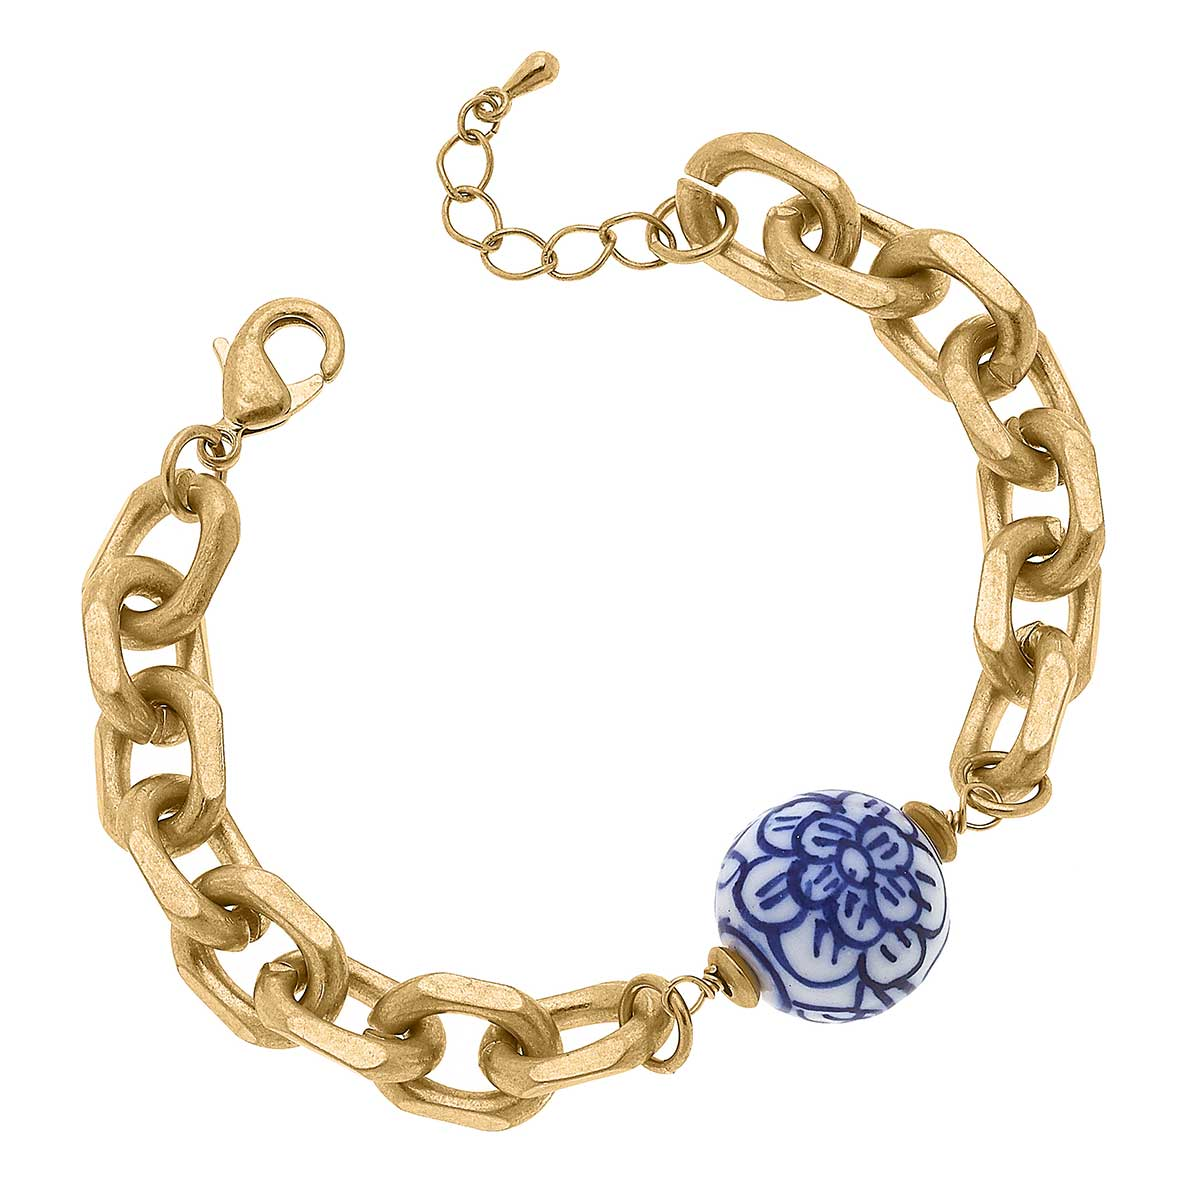 Marchesa Chinoiserie & Chunky Chain Bracelet in Blue & White